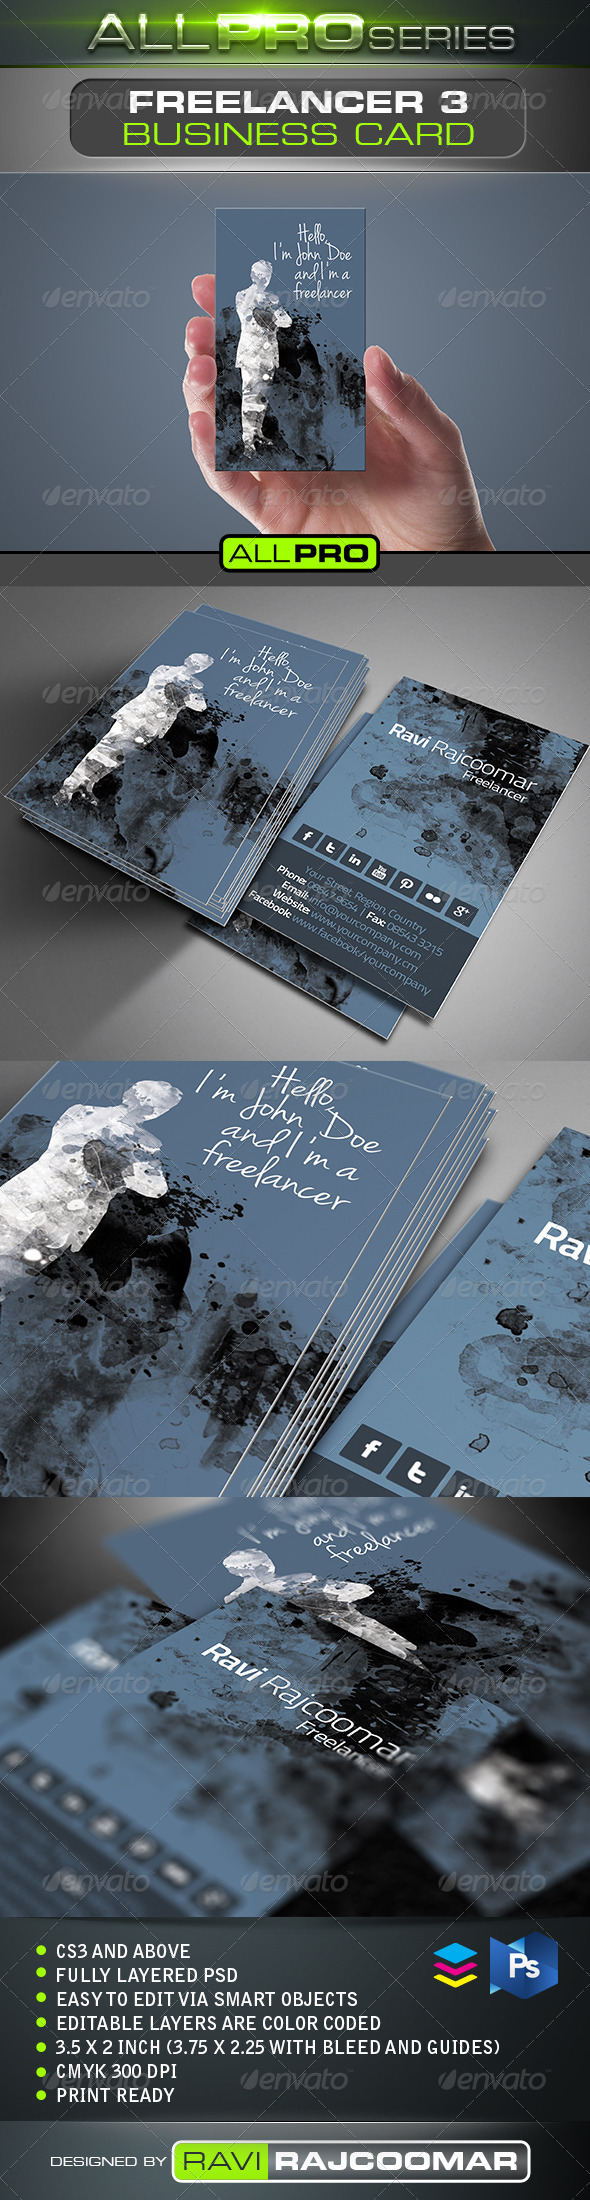 Freelancer Business Card Vol.3 - Business Cards Print Templates